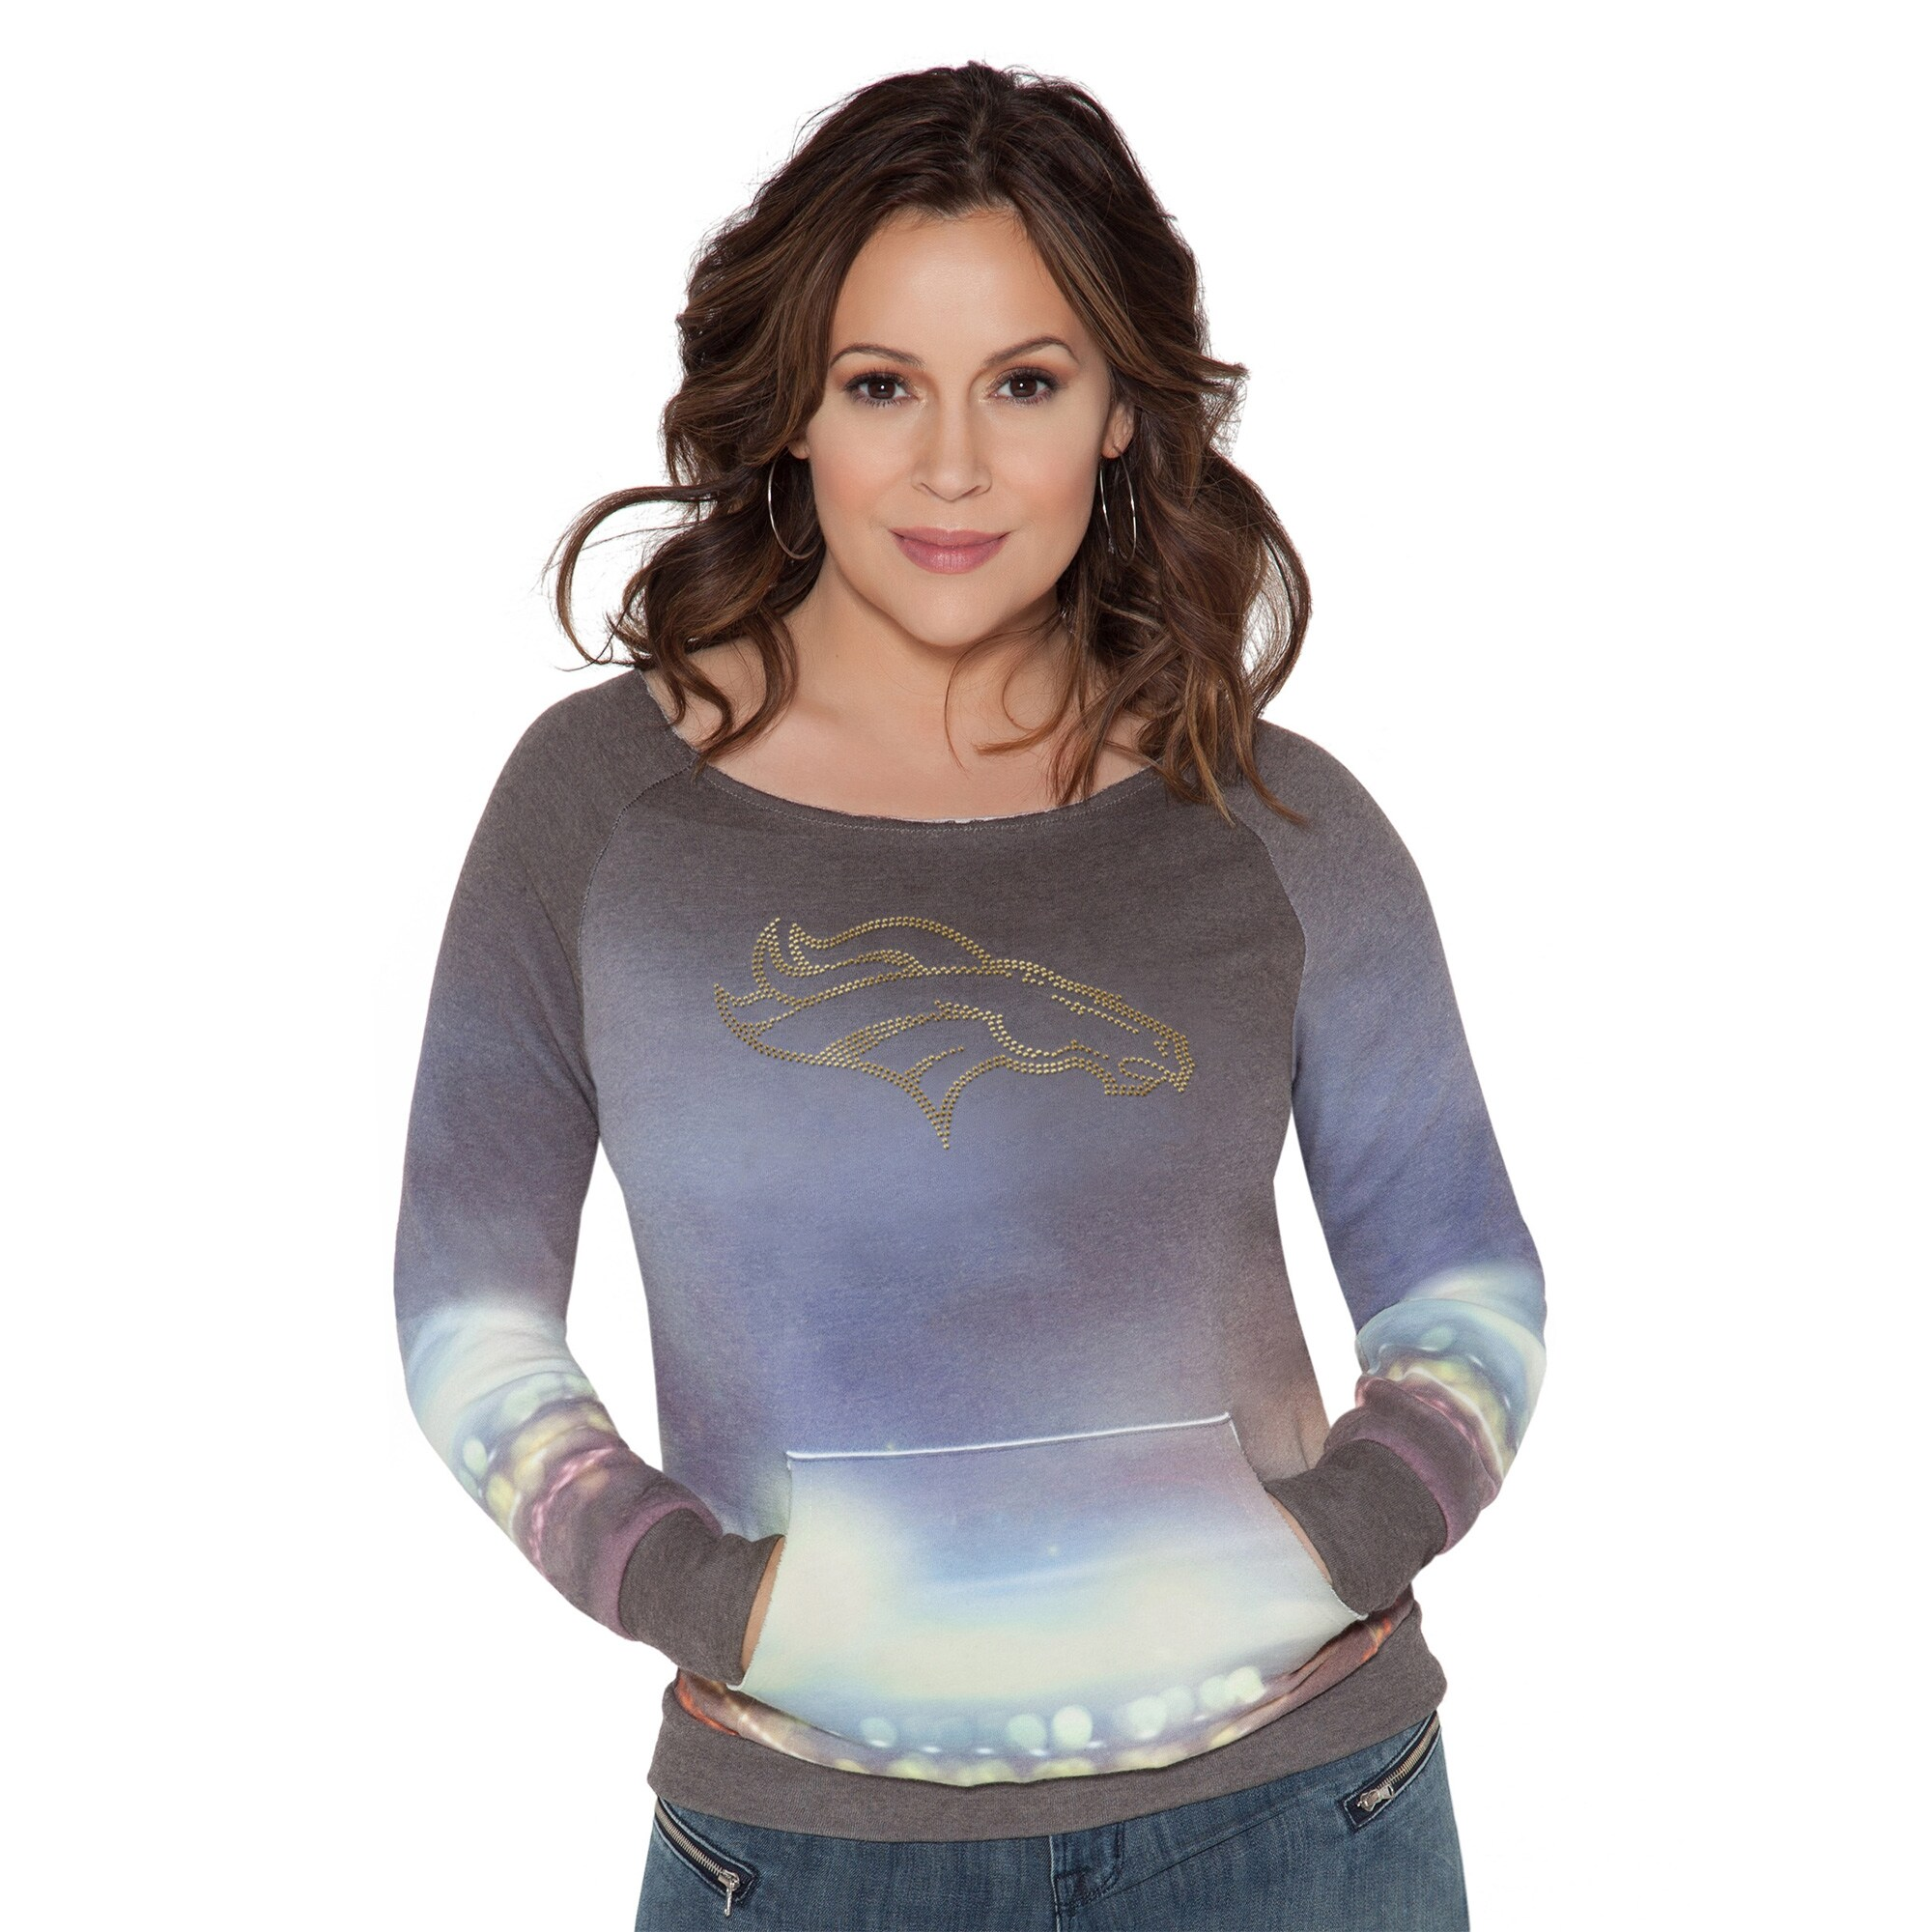 Denver Broncos Touch by Alyssa Milano Women's Touch Bright Lights Sublimated Crew Pullover Sweatshirt - Multi